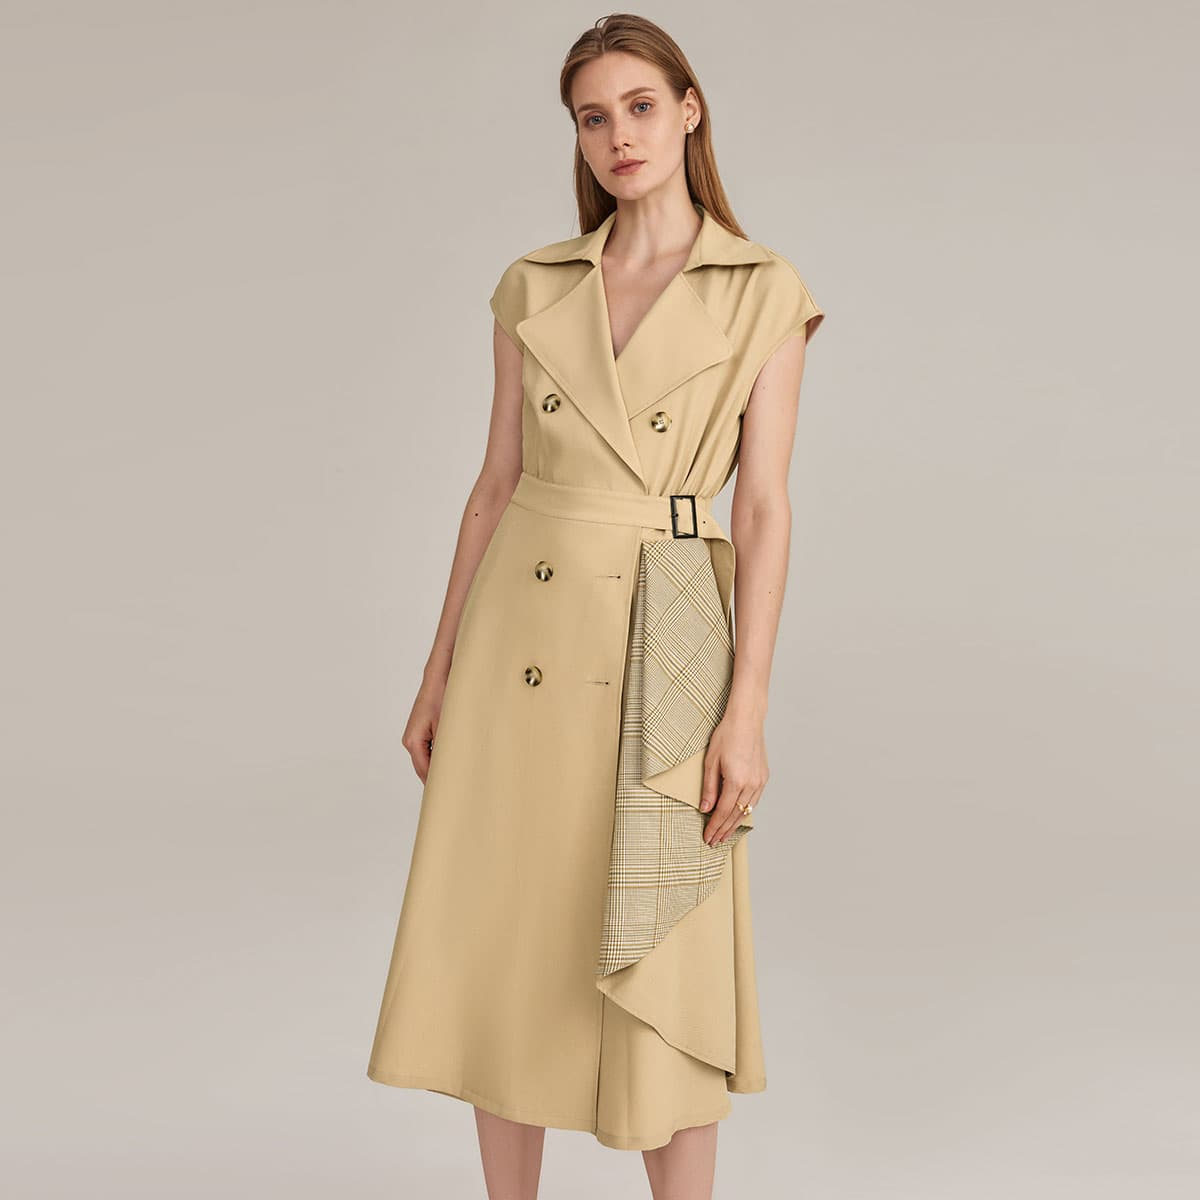 Notch Collar Plaid Draped Detail Buckle Belted Trench Dress